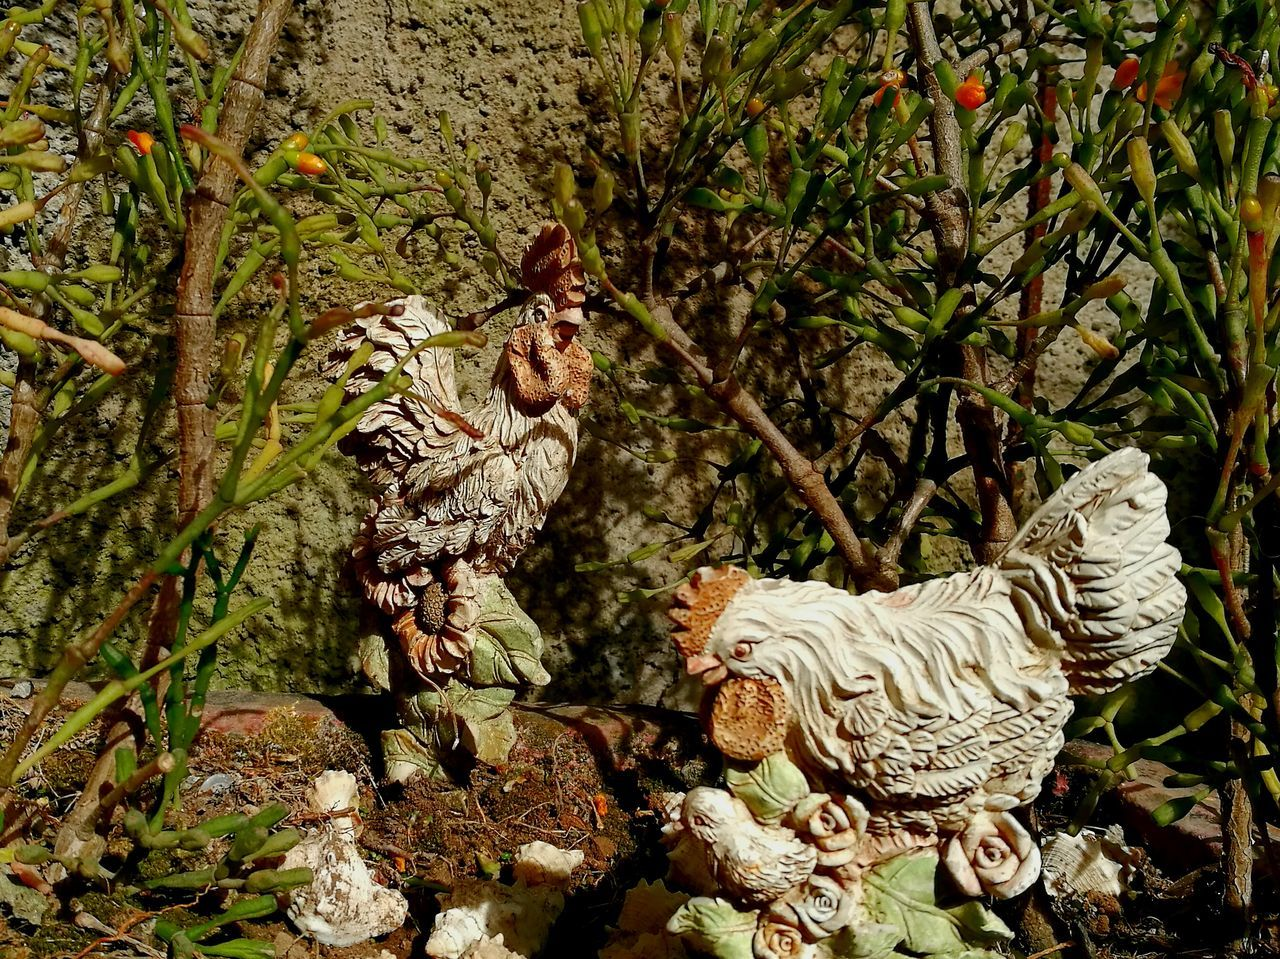 Outdoors Nature Animal Themes Garden Domestic Animals Decorations Animal Decoration Chickens Chicken - Bird Rooster Hen Plants Plants And Garden Decorative Ornaments No People Day in San Jose, Costa Rica